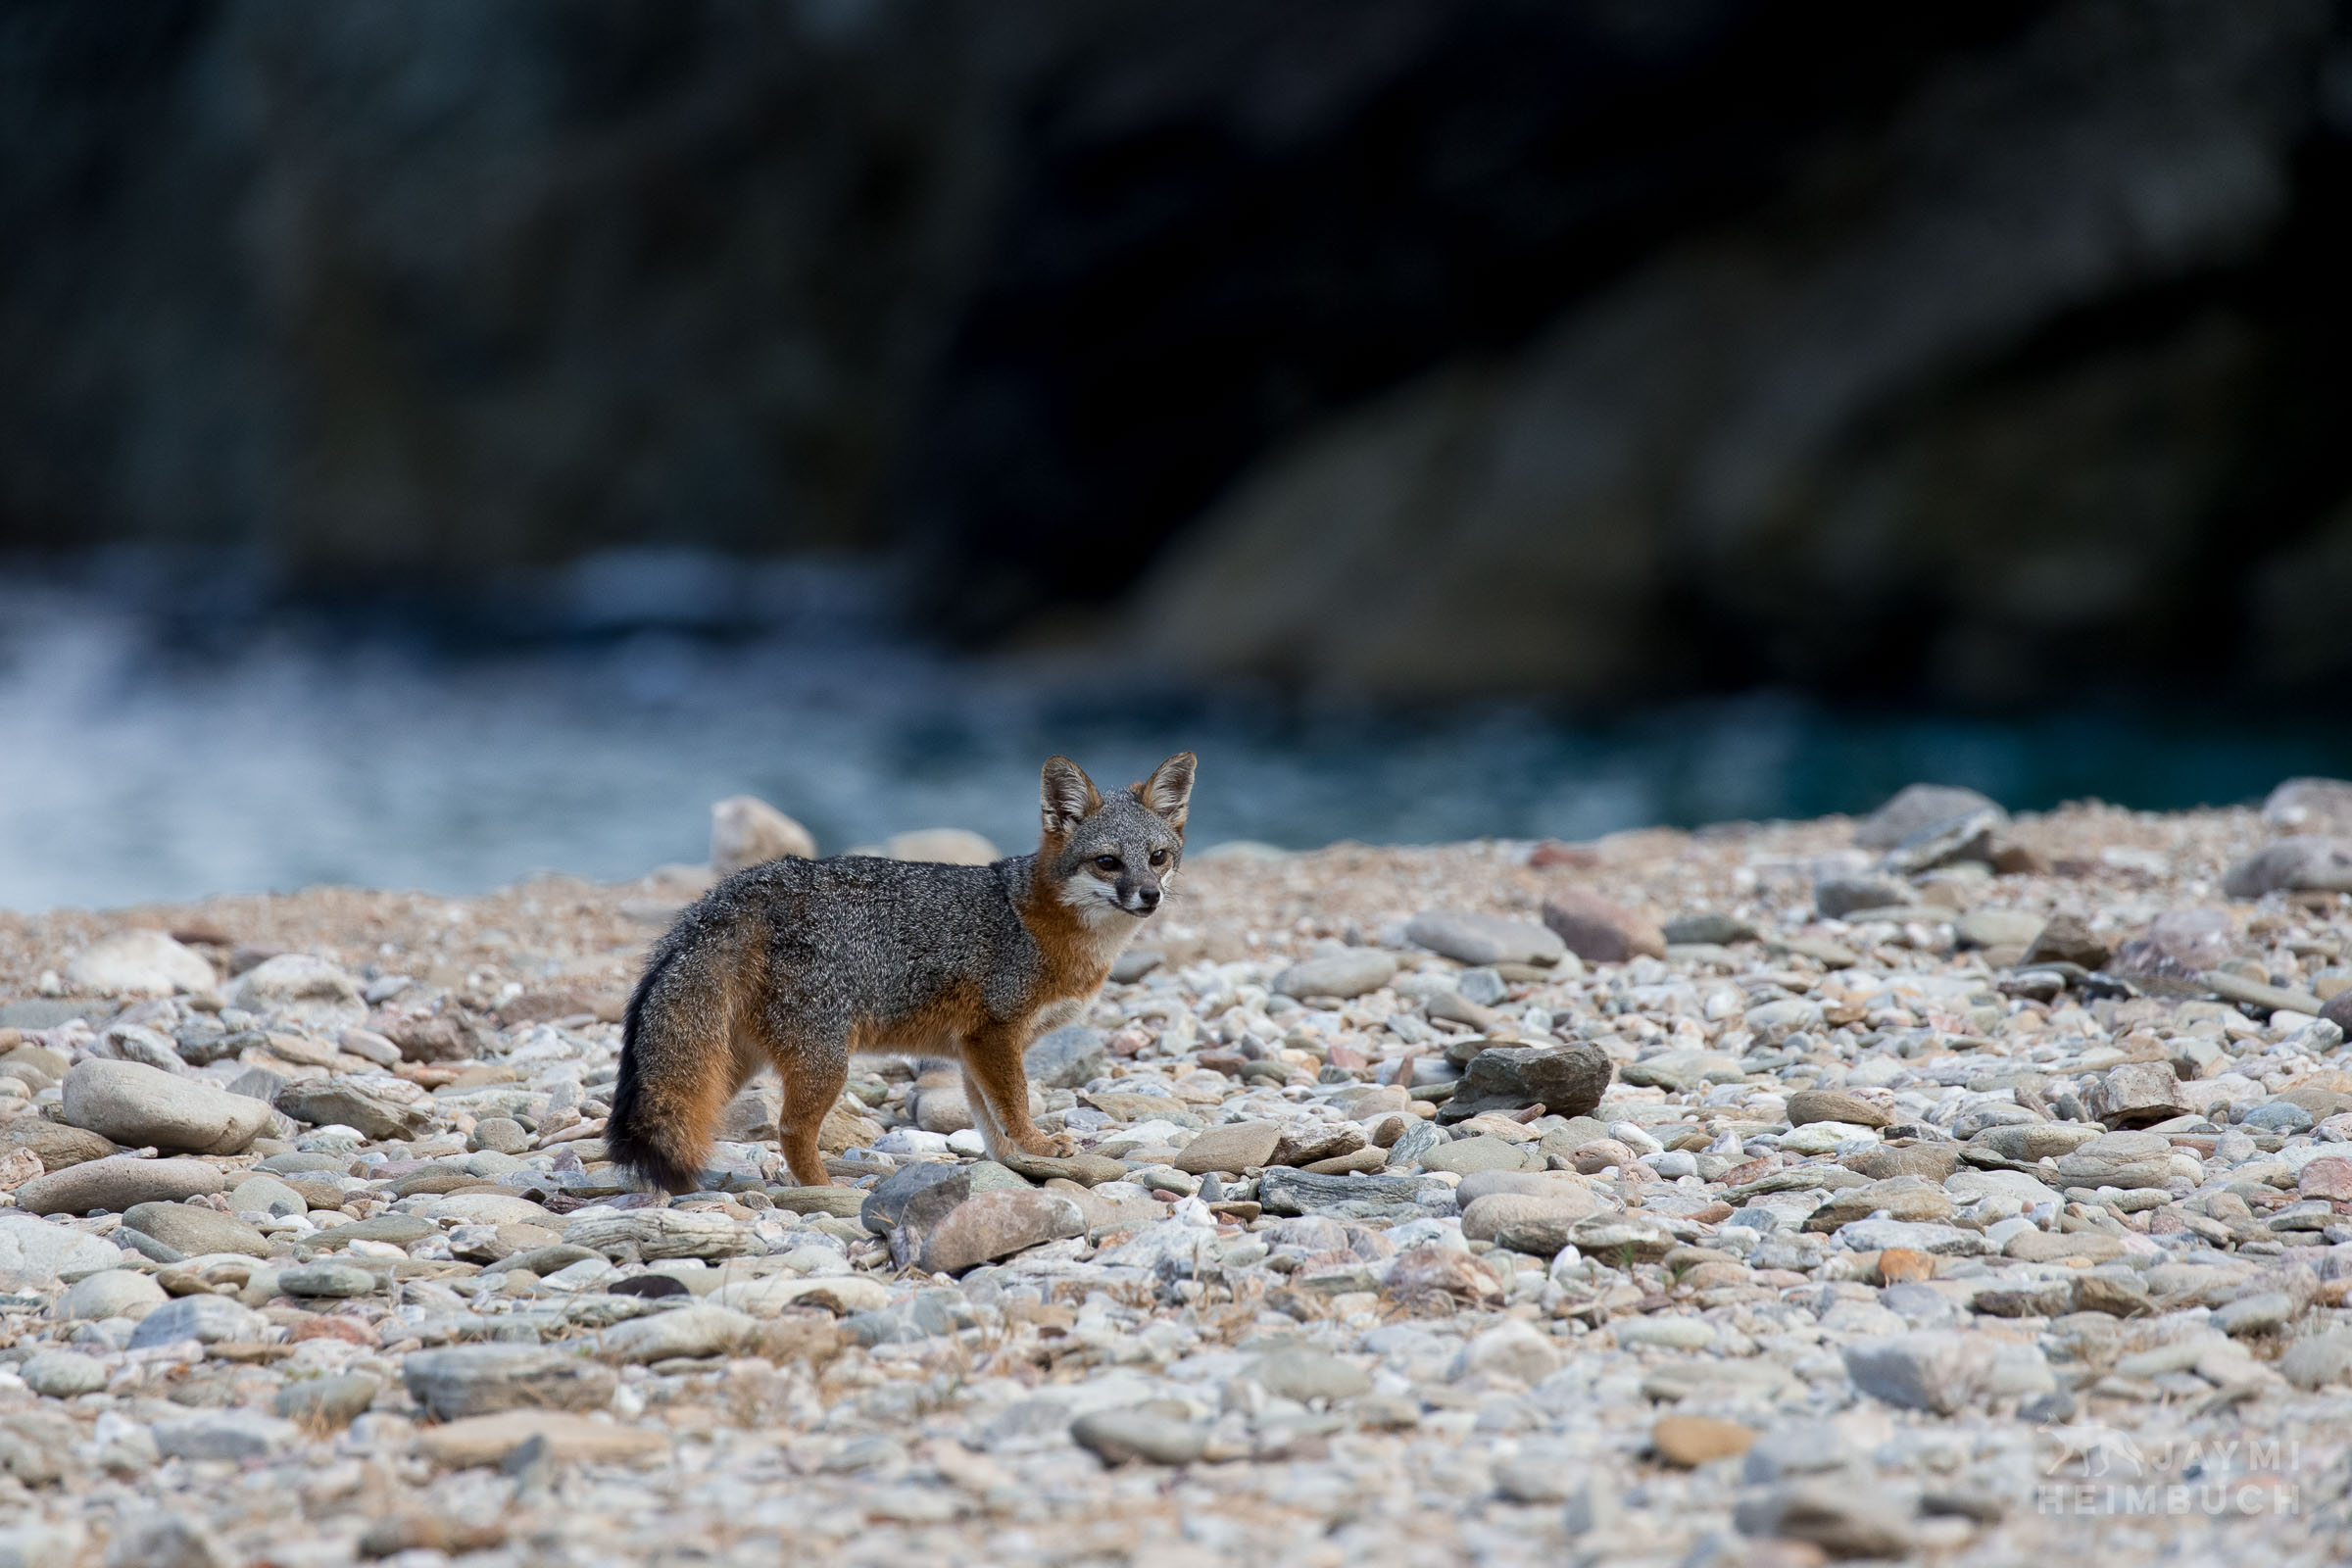 Channel Island Fox, Urocyon littoralis catalinae, pauses for a moment on the beach to look back at the biologists that just released it from a live trap and provided it with a general health exam, Santa Catalina Island,  California, United States